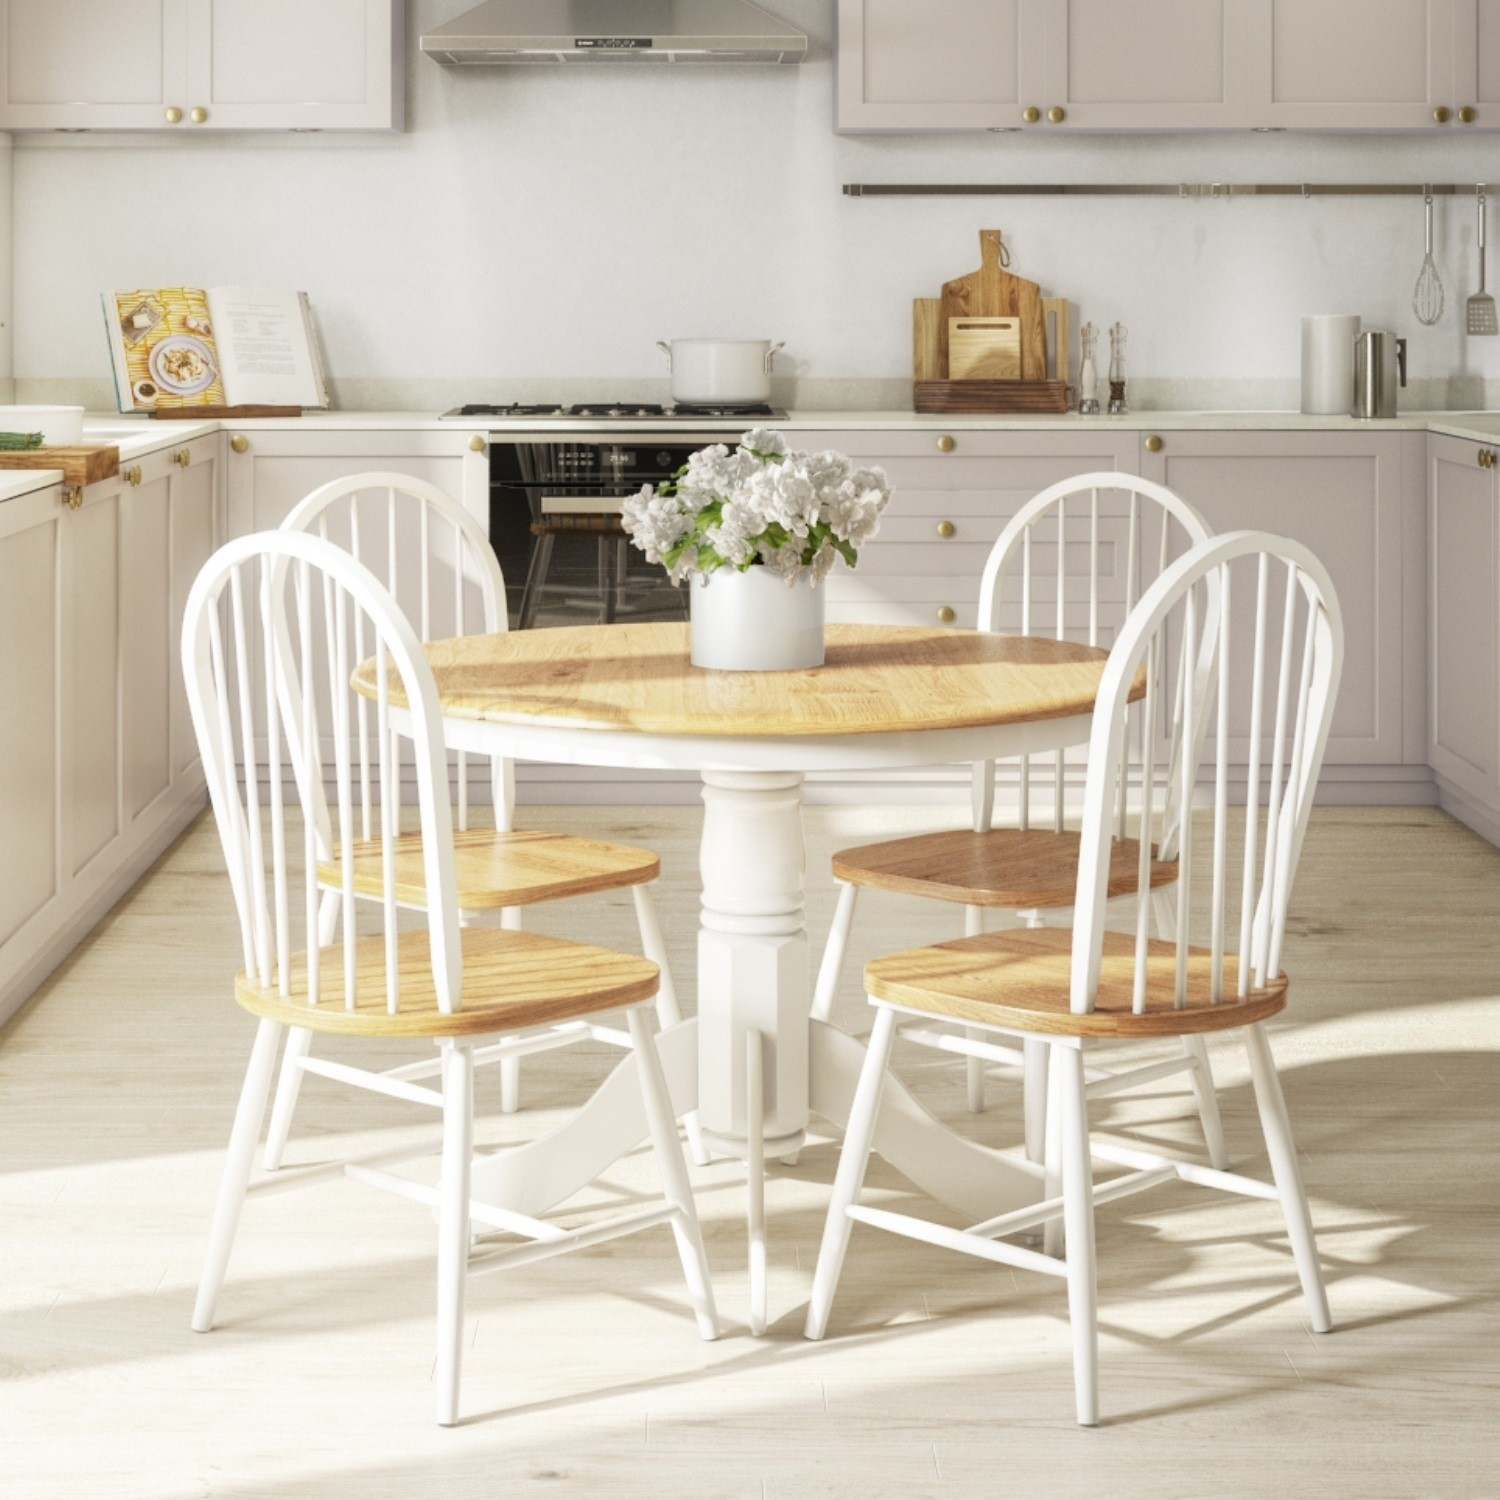 Small Round Dining Table With 4 Chairs In Wood White Rhode Island Furniture123